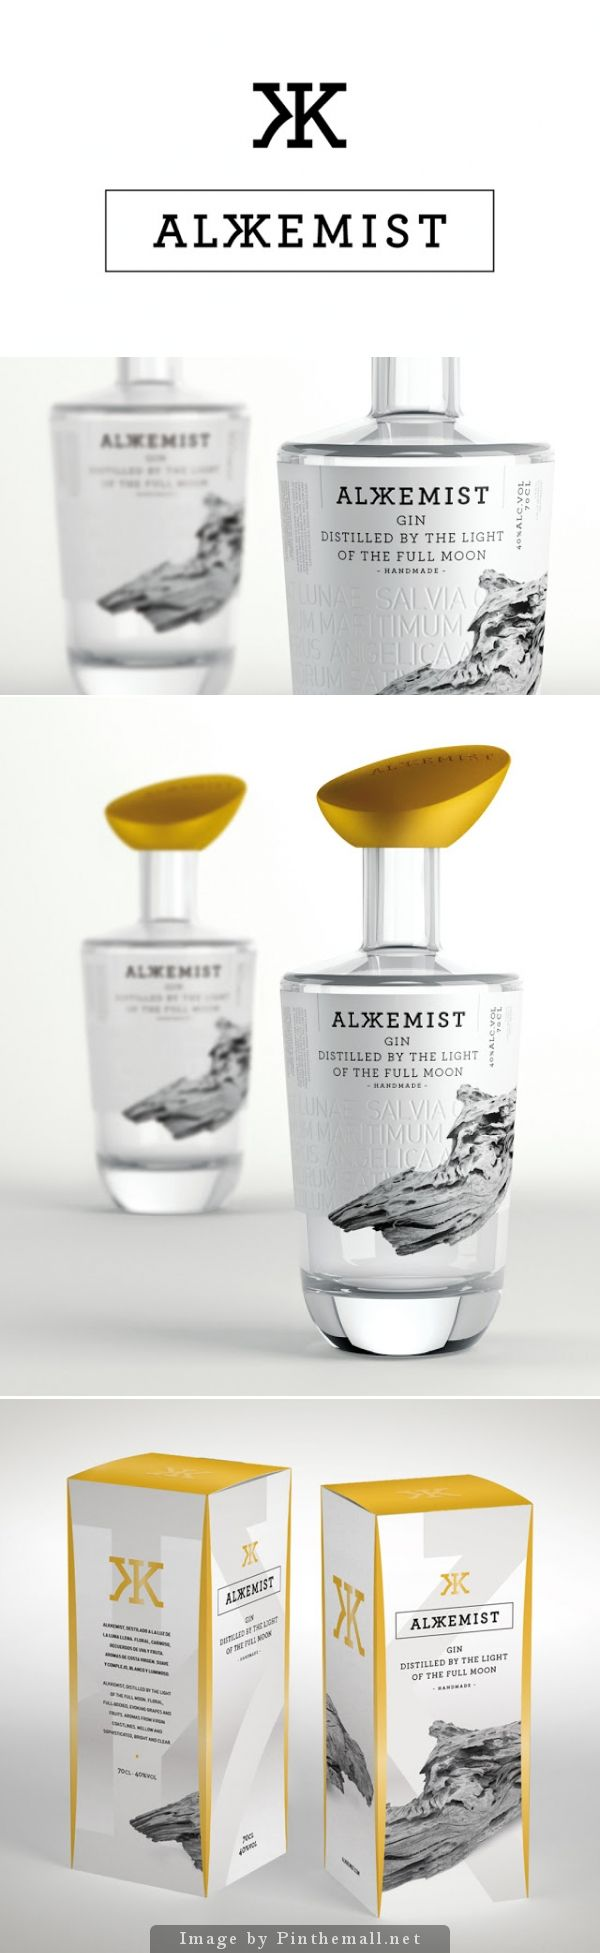 ALKKEMIST Gin by Series Nemo